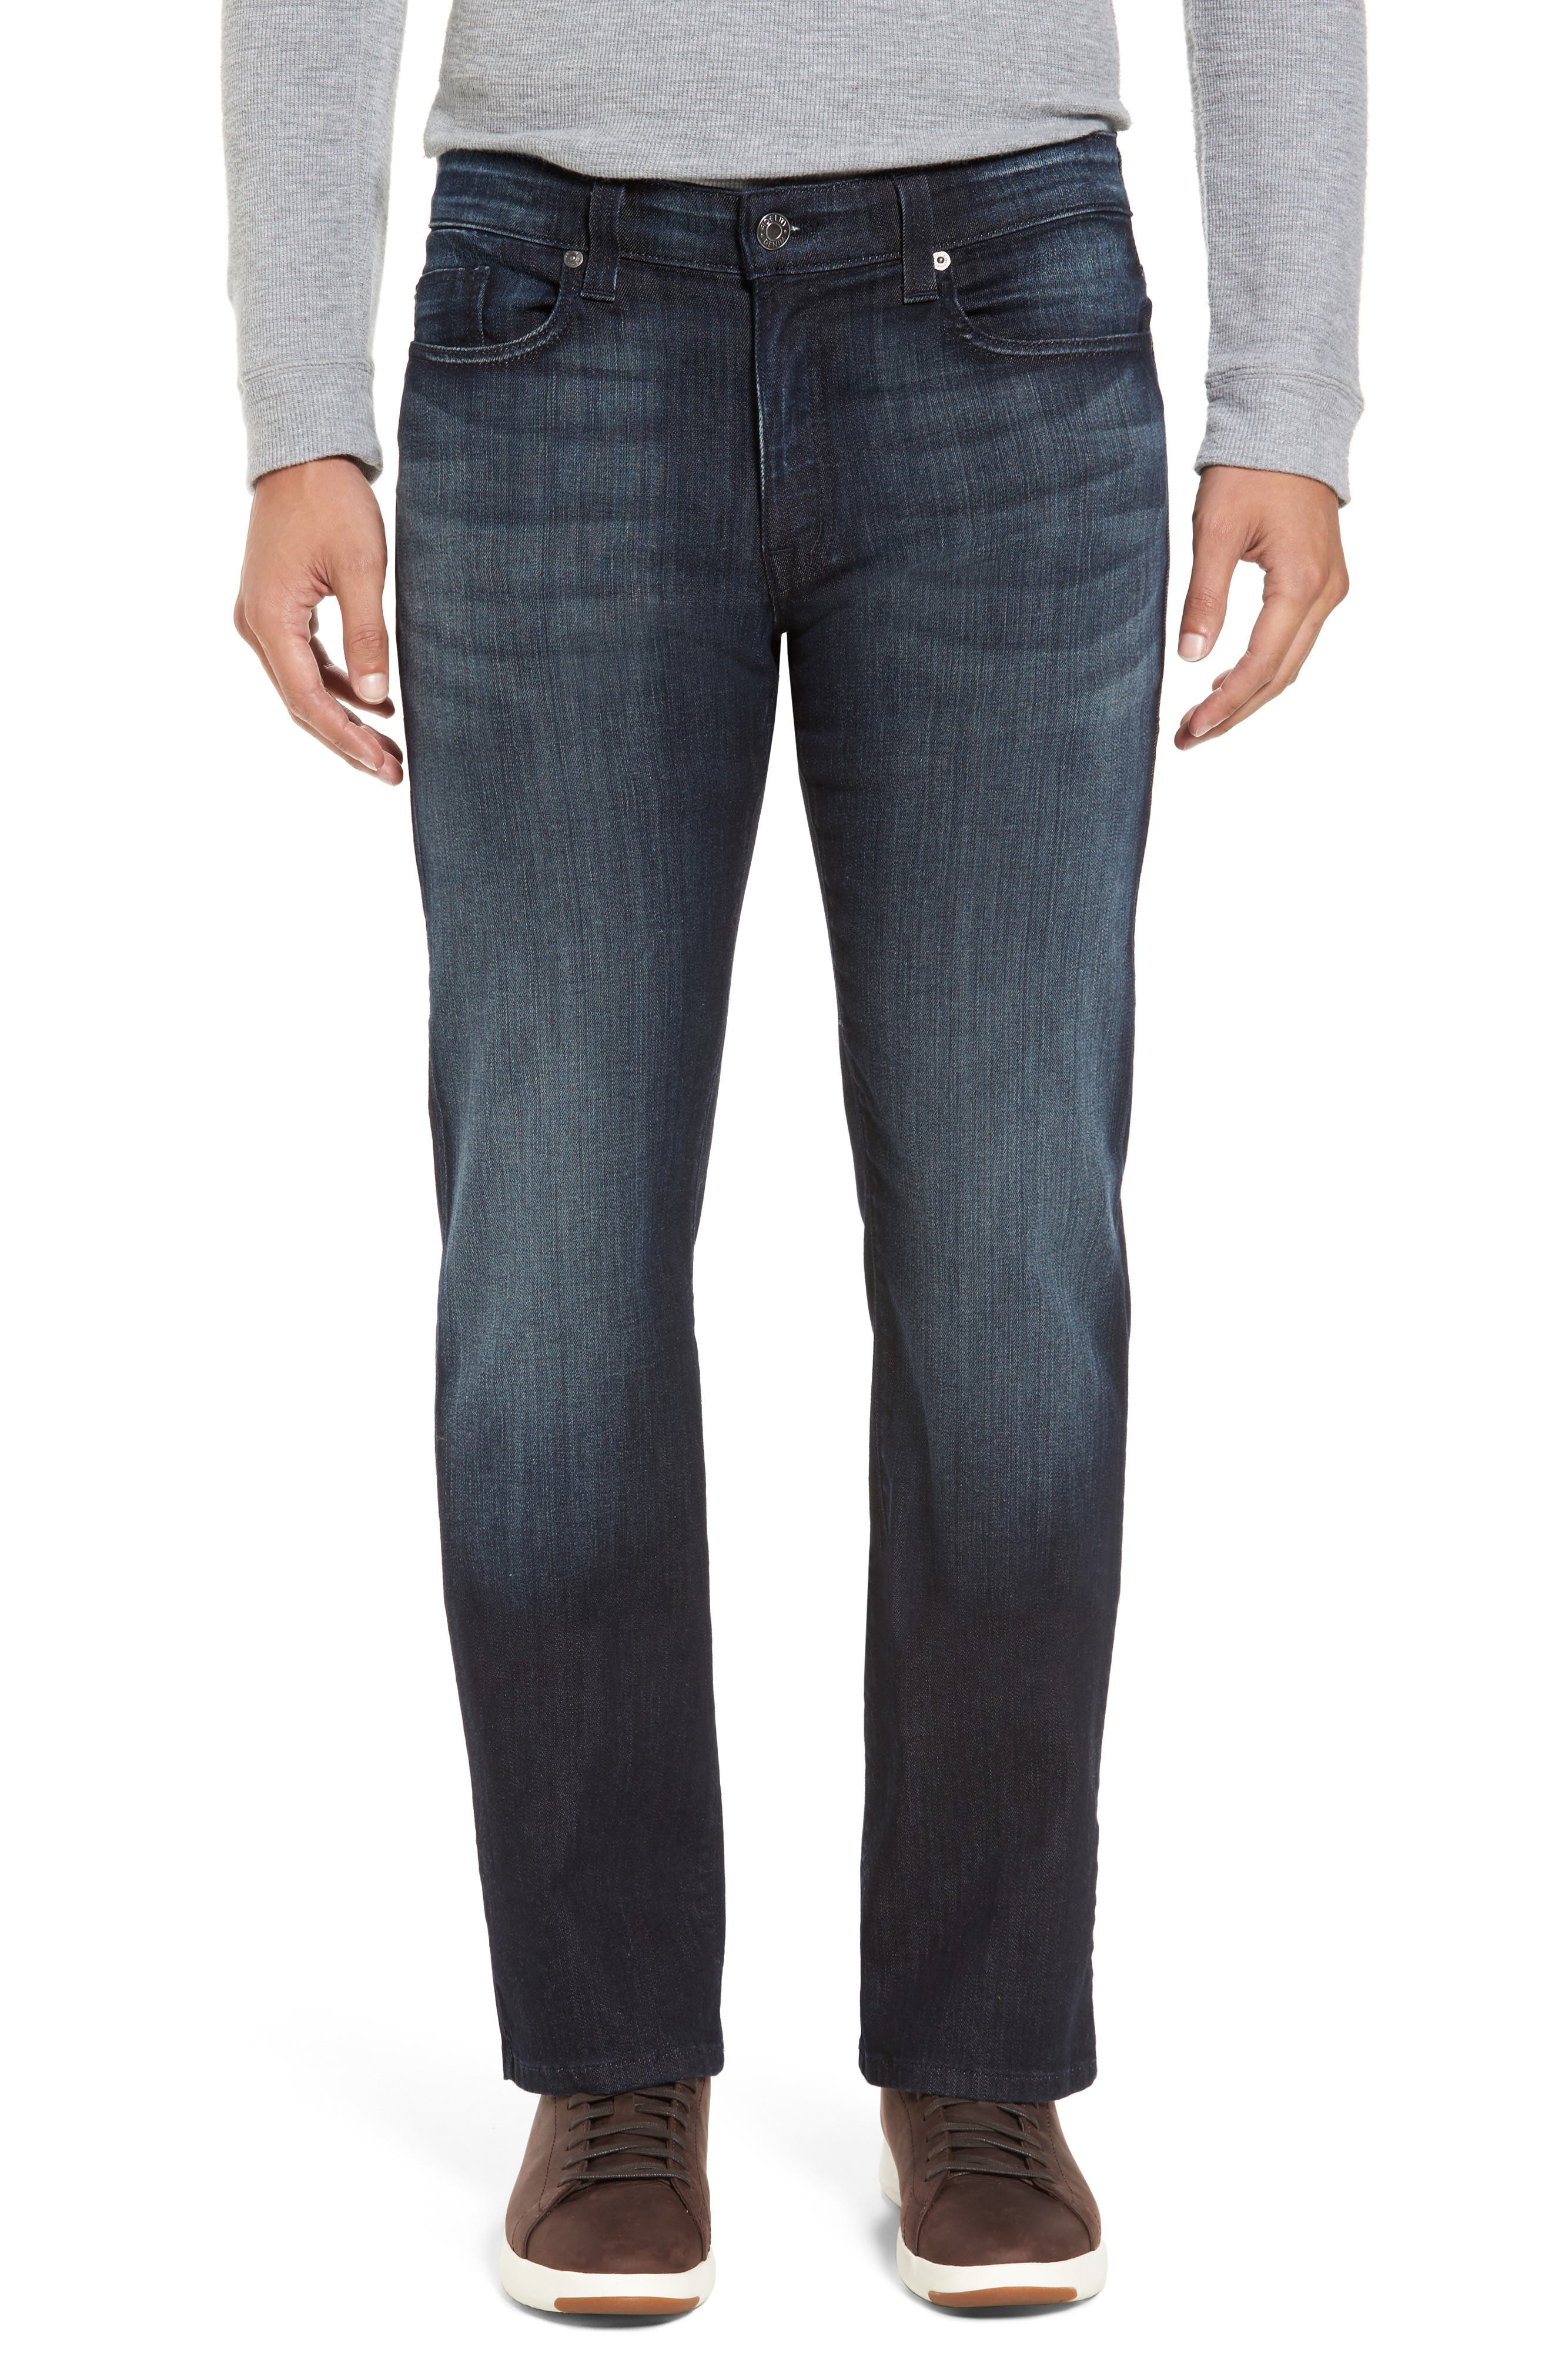 Main Image - Fidelity Denim 5011 Relaxed Fit Jeans (Brooklyn Blue)